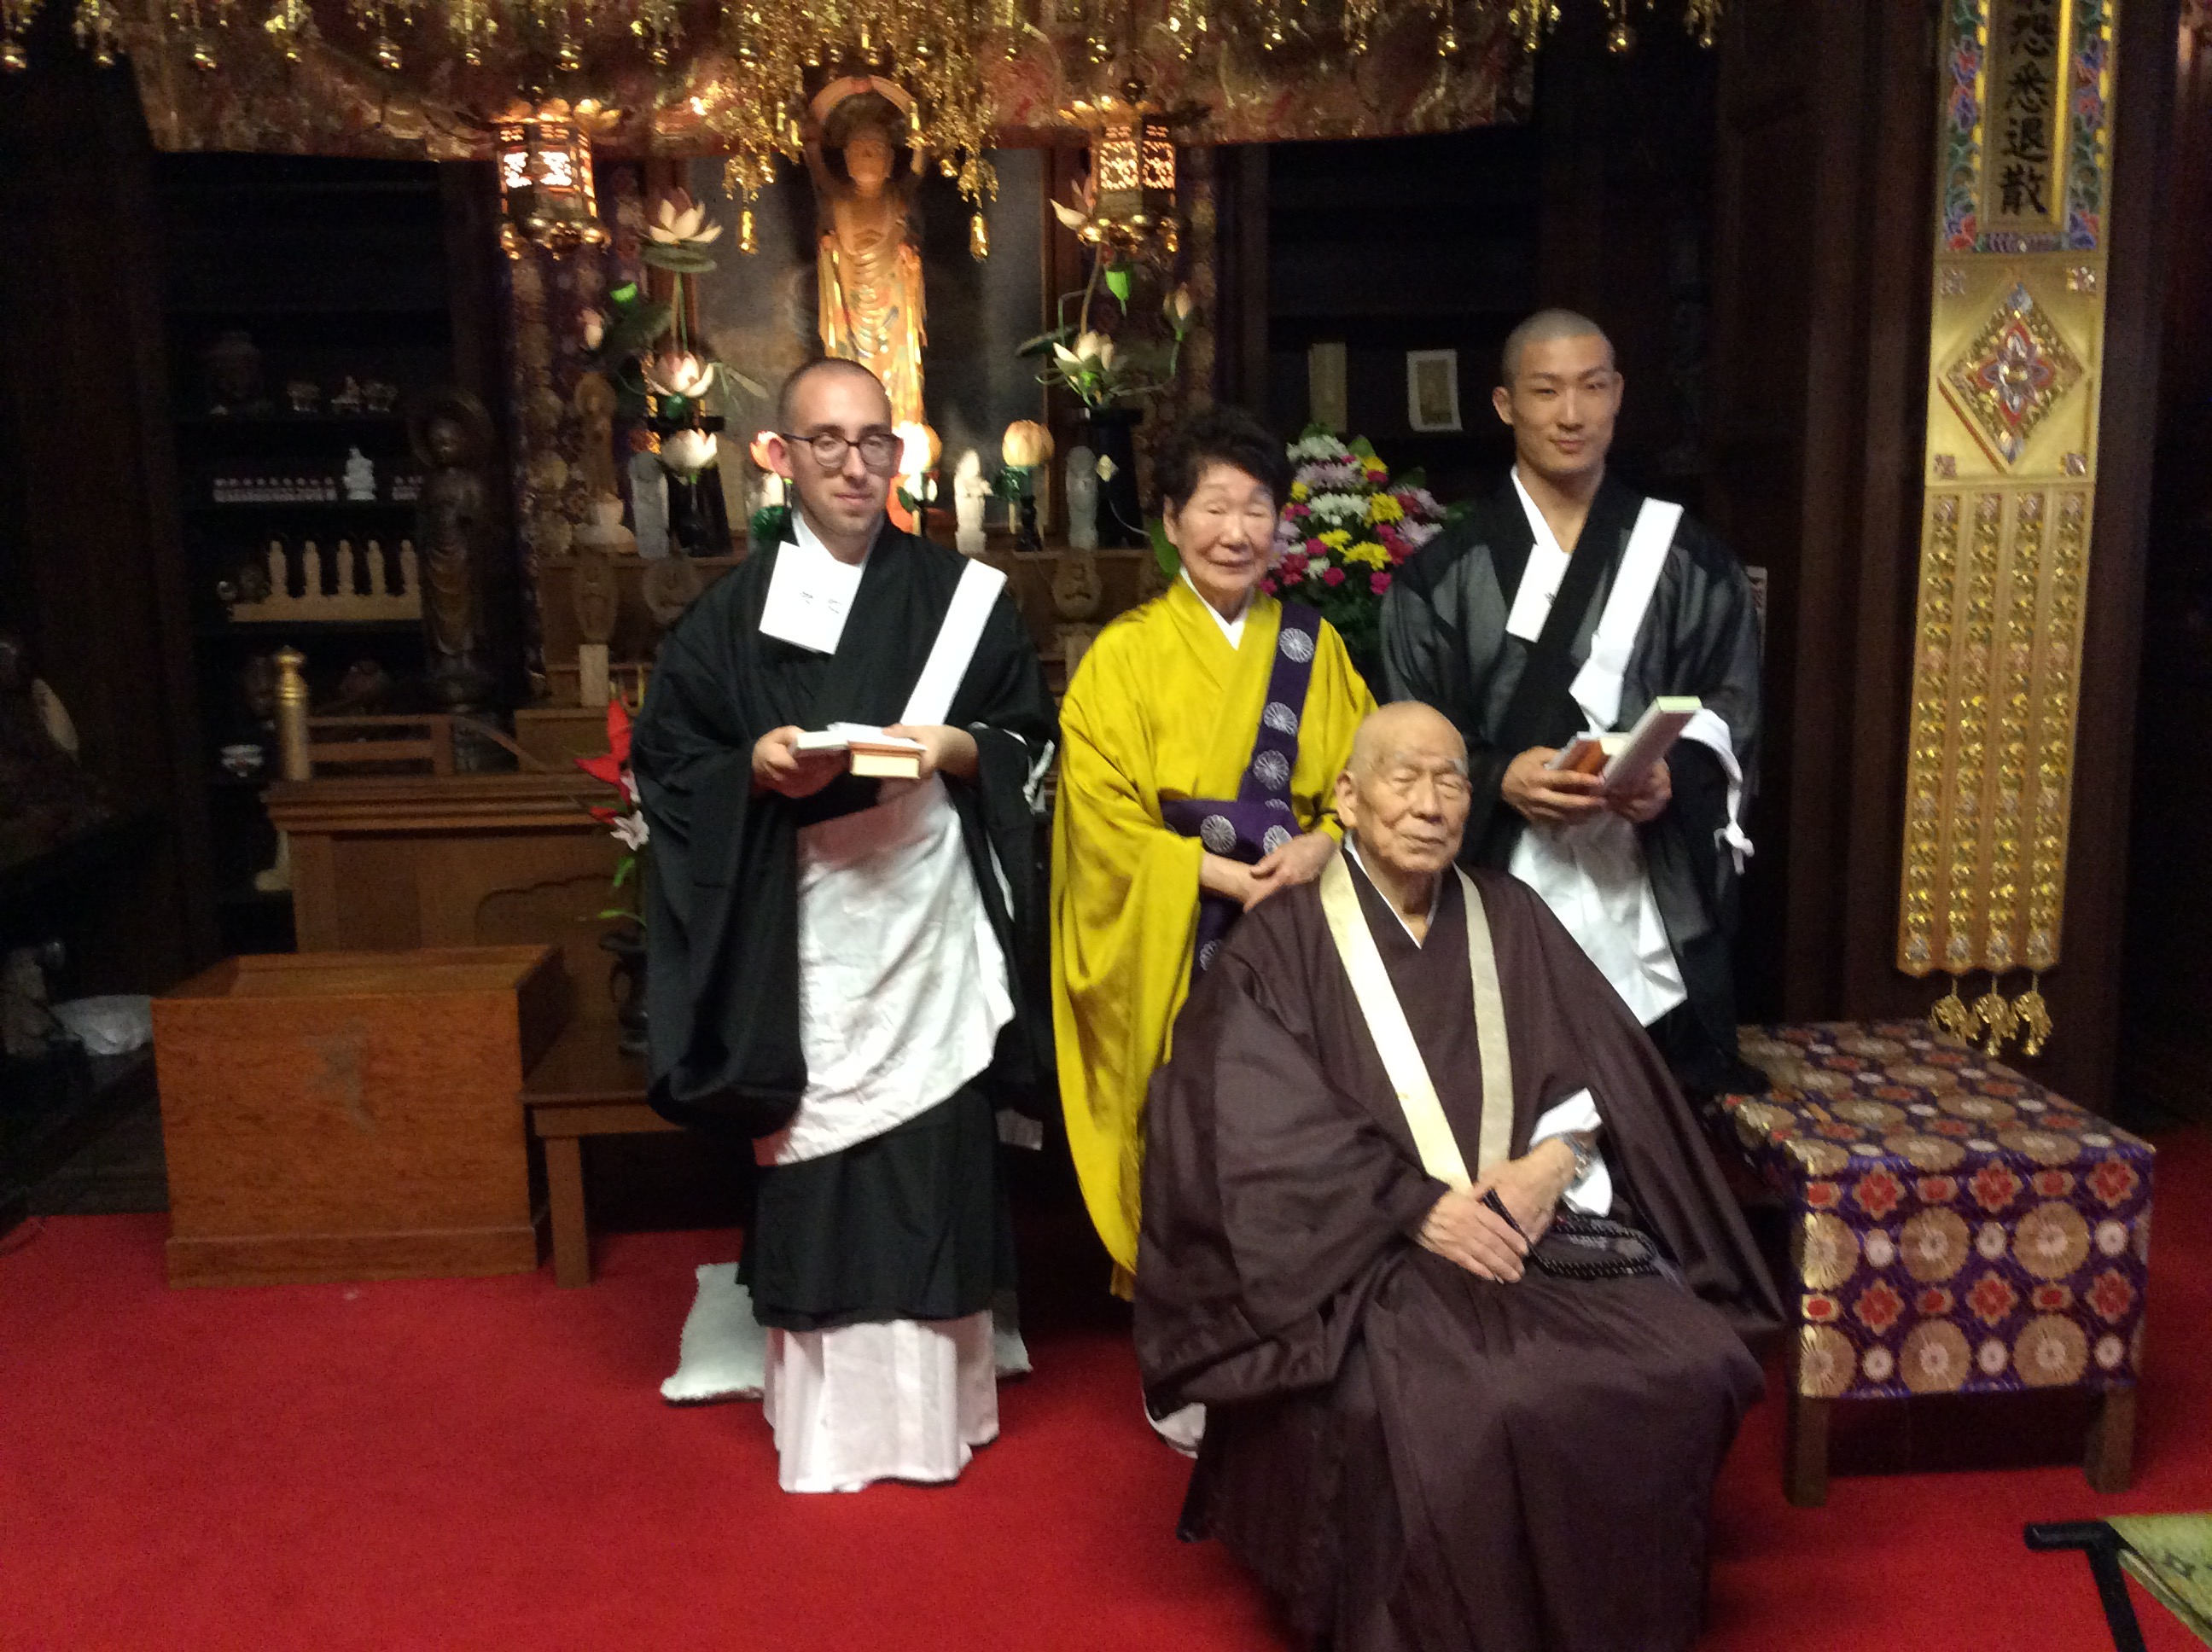 Priests after tokudo at Hawaii Betsuin